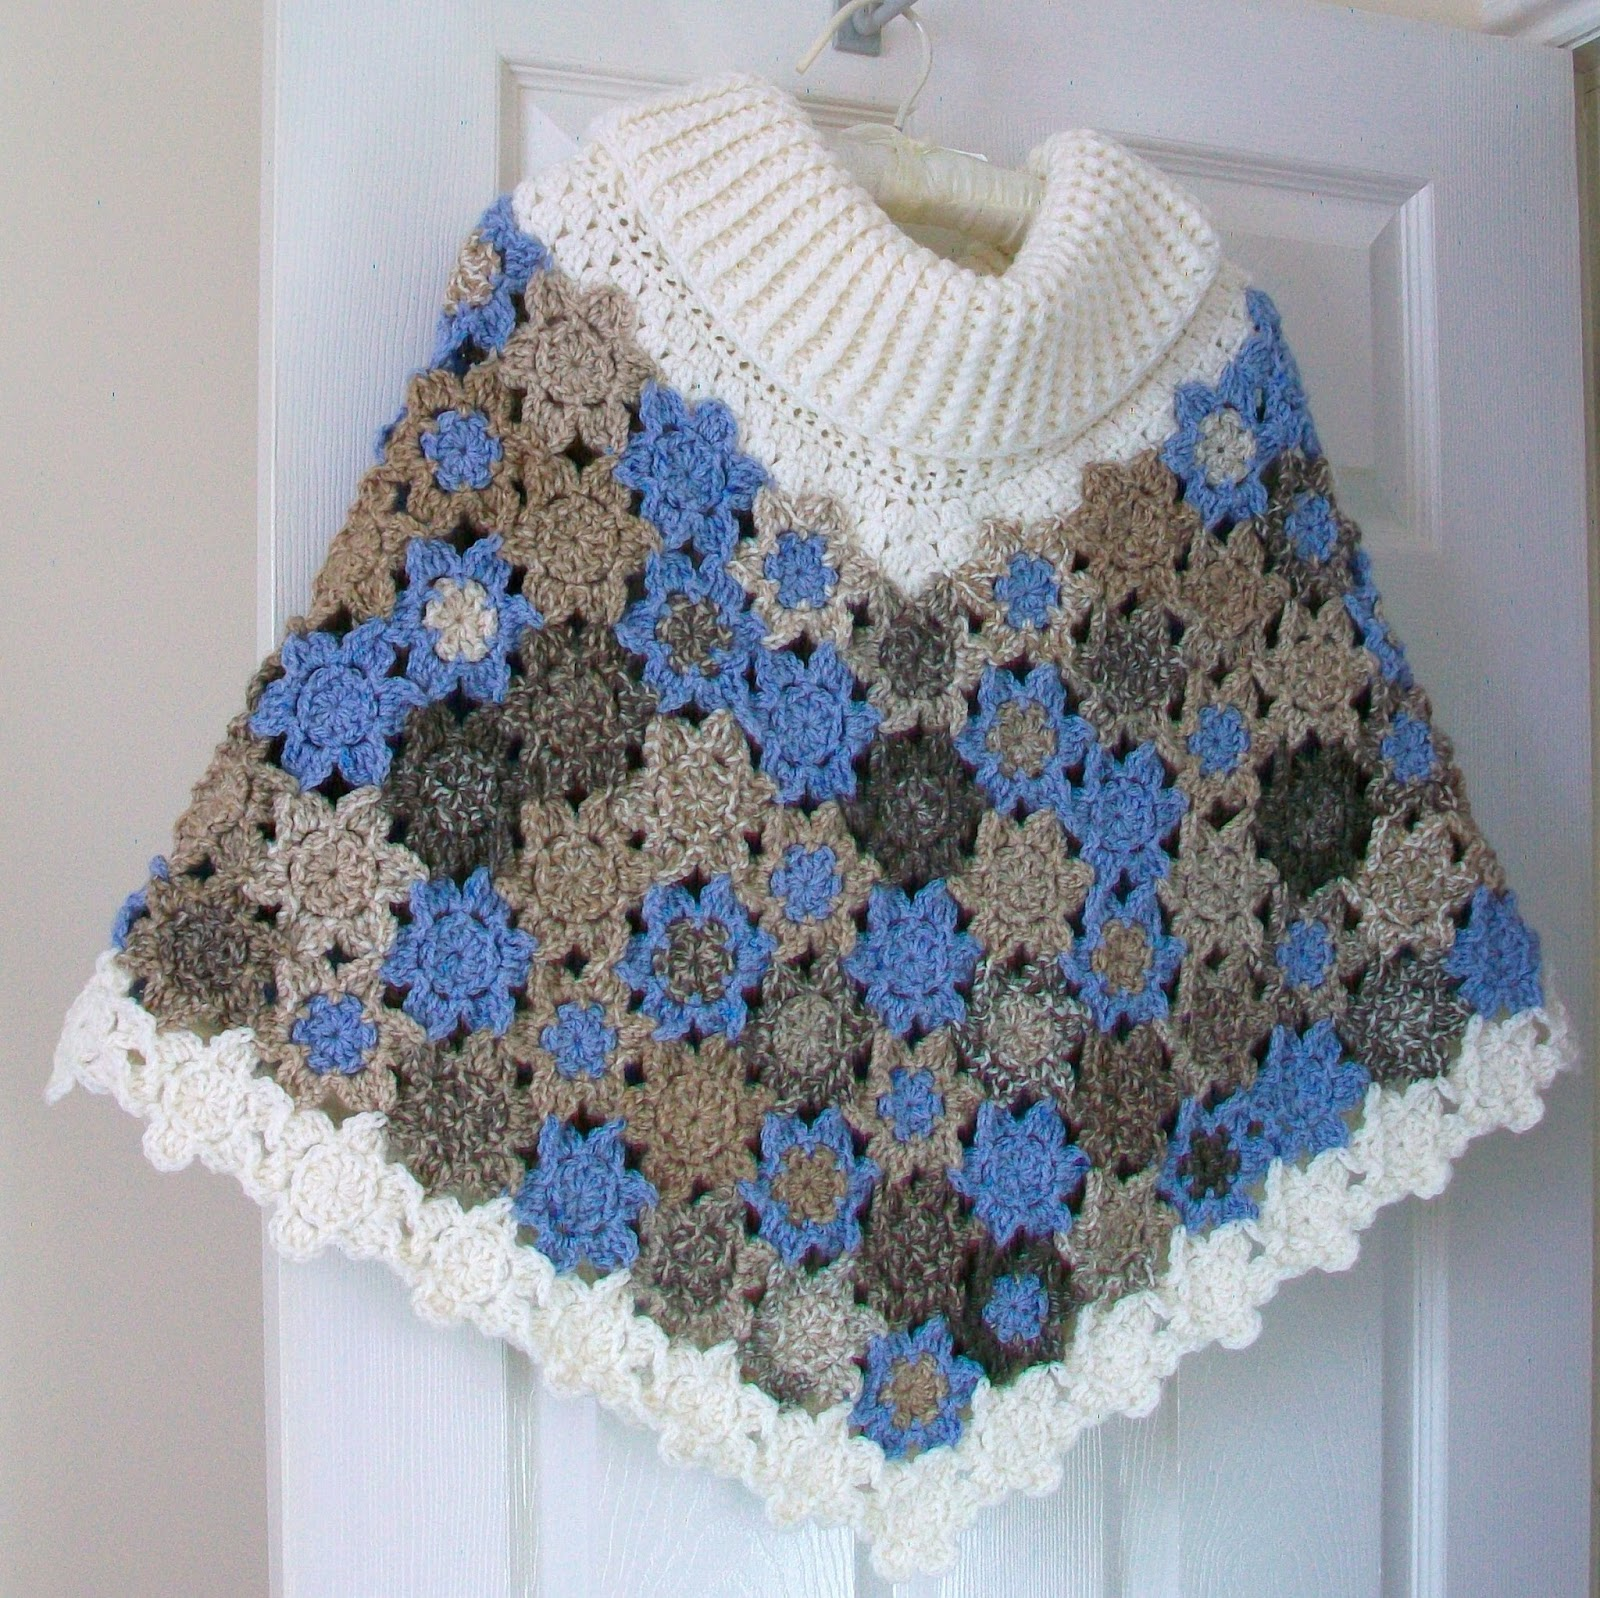 Cuppa Crochet: A Twist on the Cowl Neck Poncho